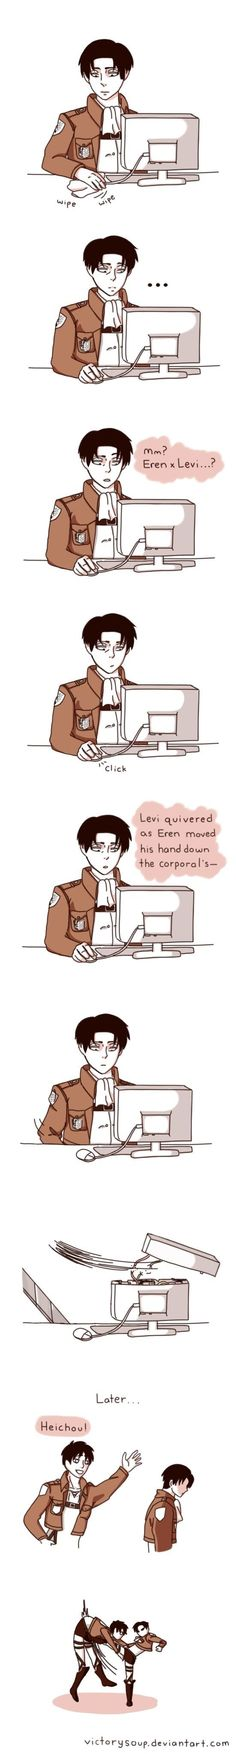 Holy mother of god....wonder what dat fanfict was about...<<<<<< he touched Levi's 3DG gear. No one touches Levi's gear and gets away with it. They might break a part.